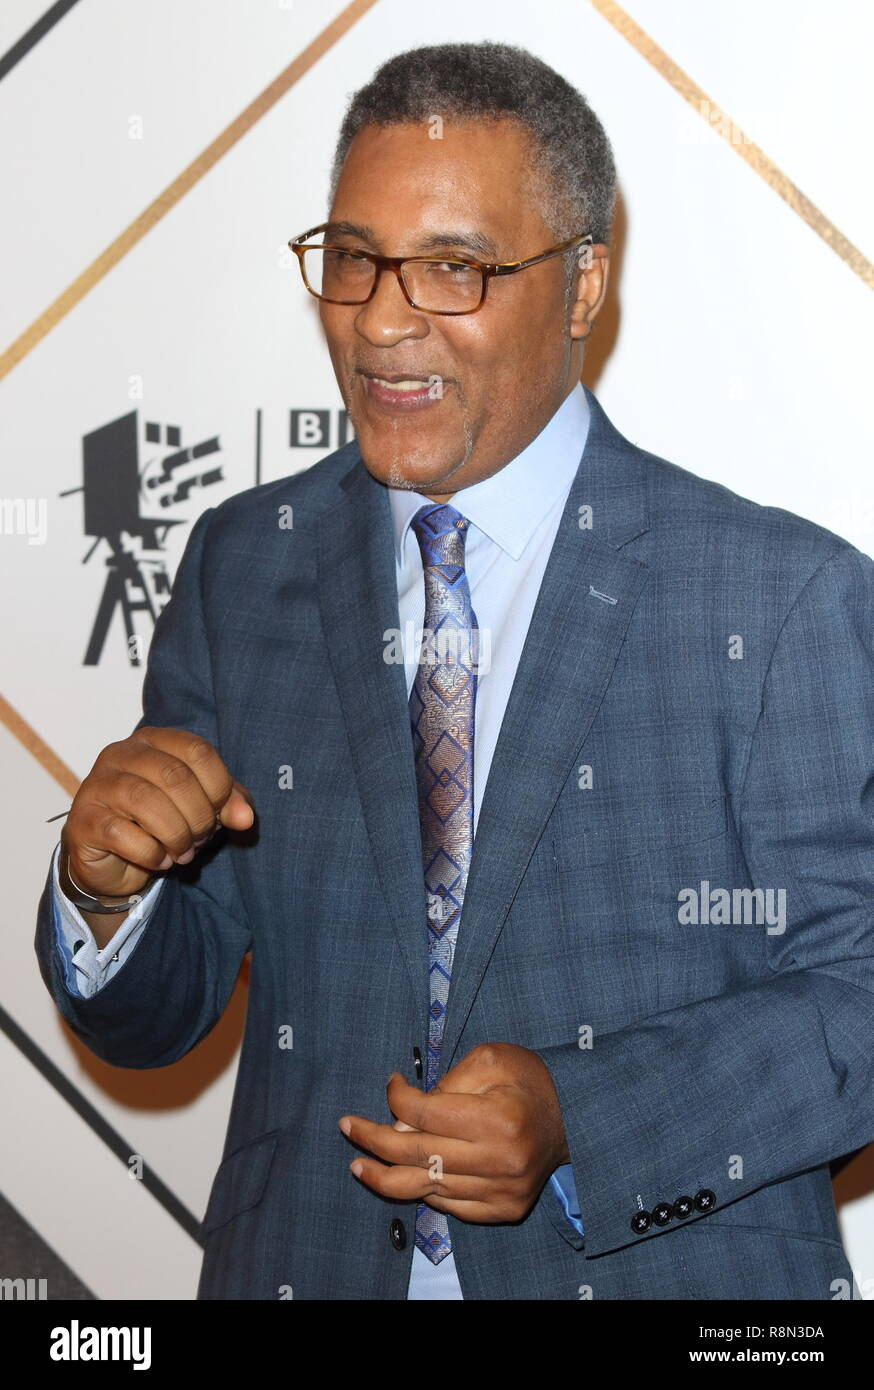 Michael Watson on the red carpet at the BBC Sports Personality Of The Year 2018 at the Resorts World Arena. - Stock Image